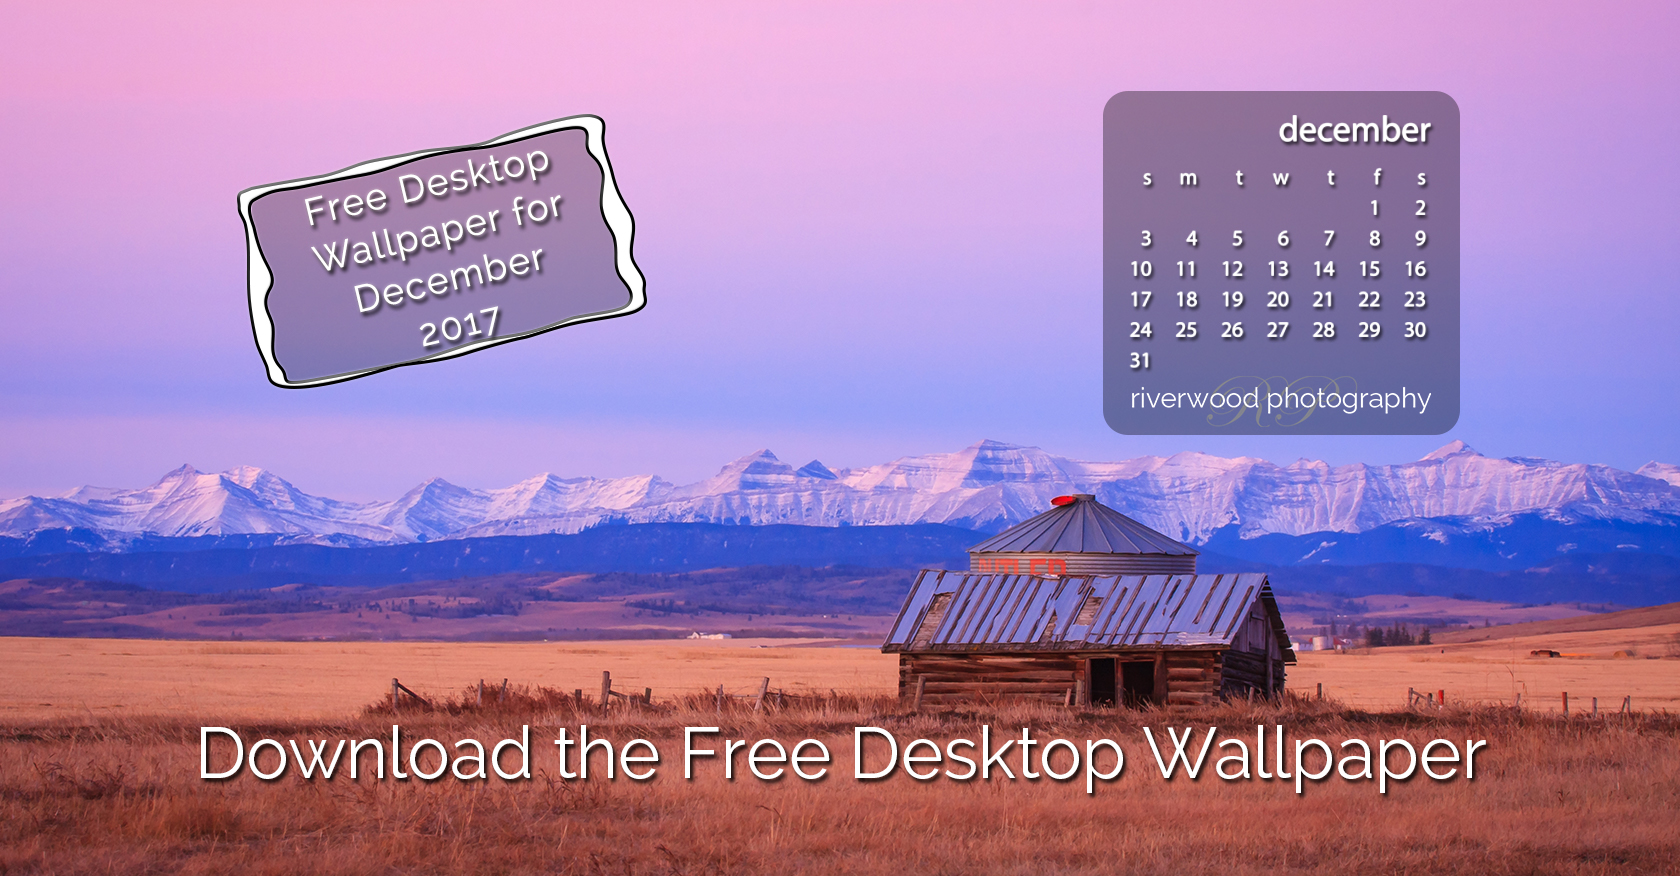 Free Desktop Wallpaper for December 2017 – Foothills Sunrise